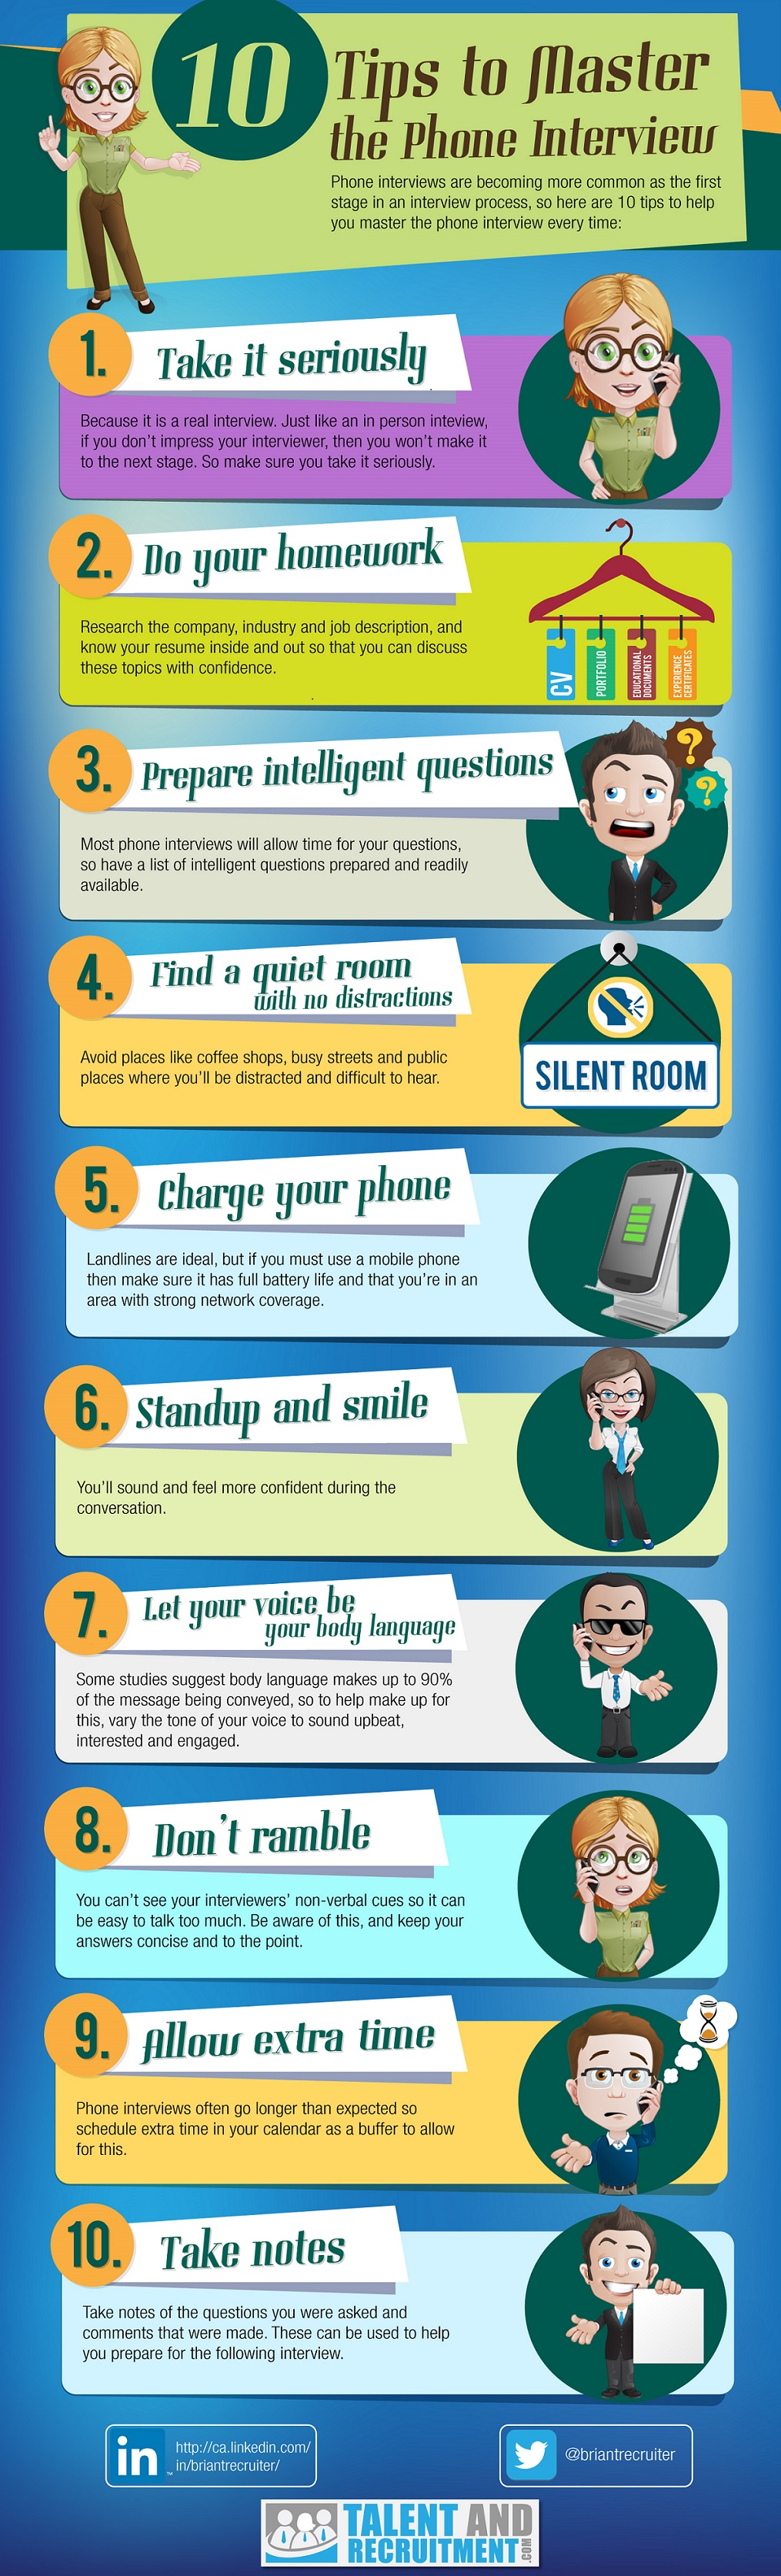 phone interview tips infographic